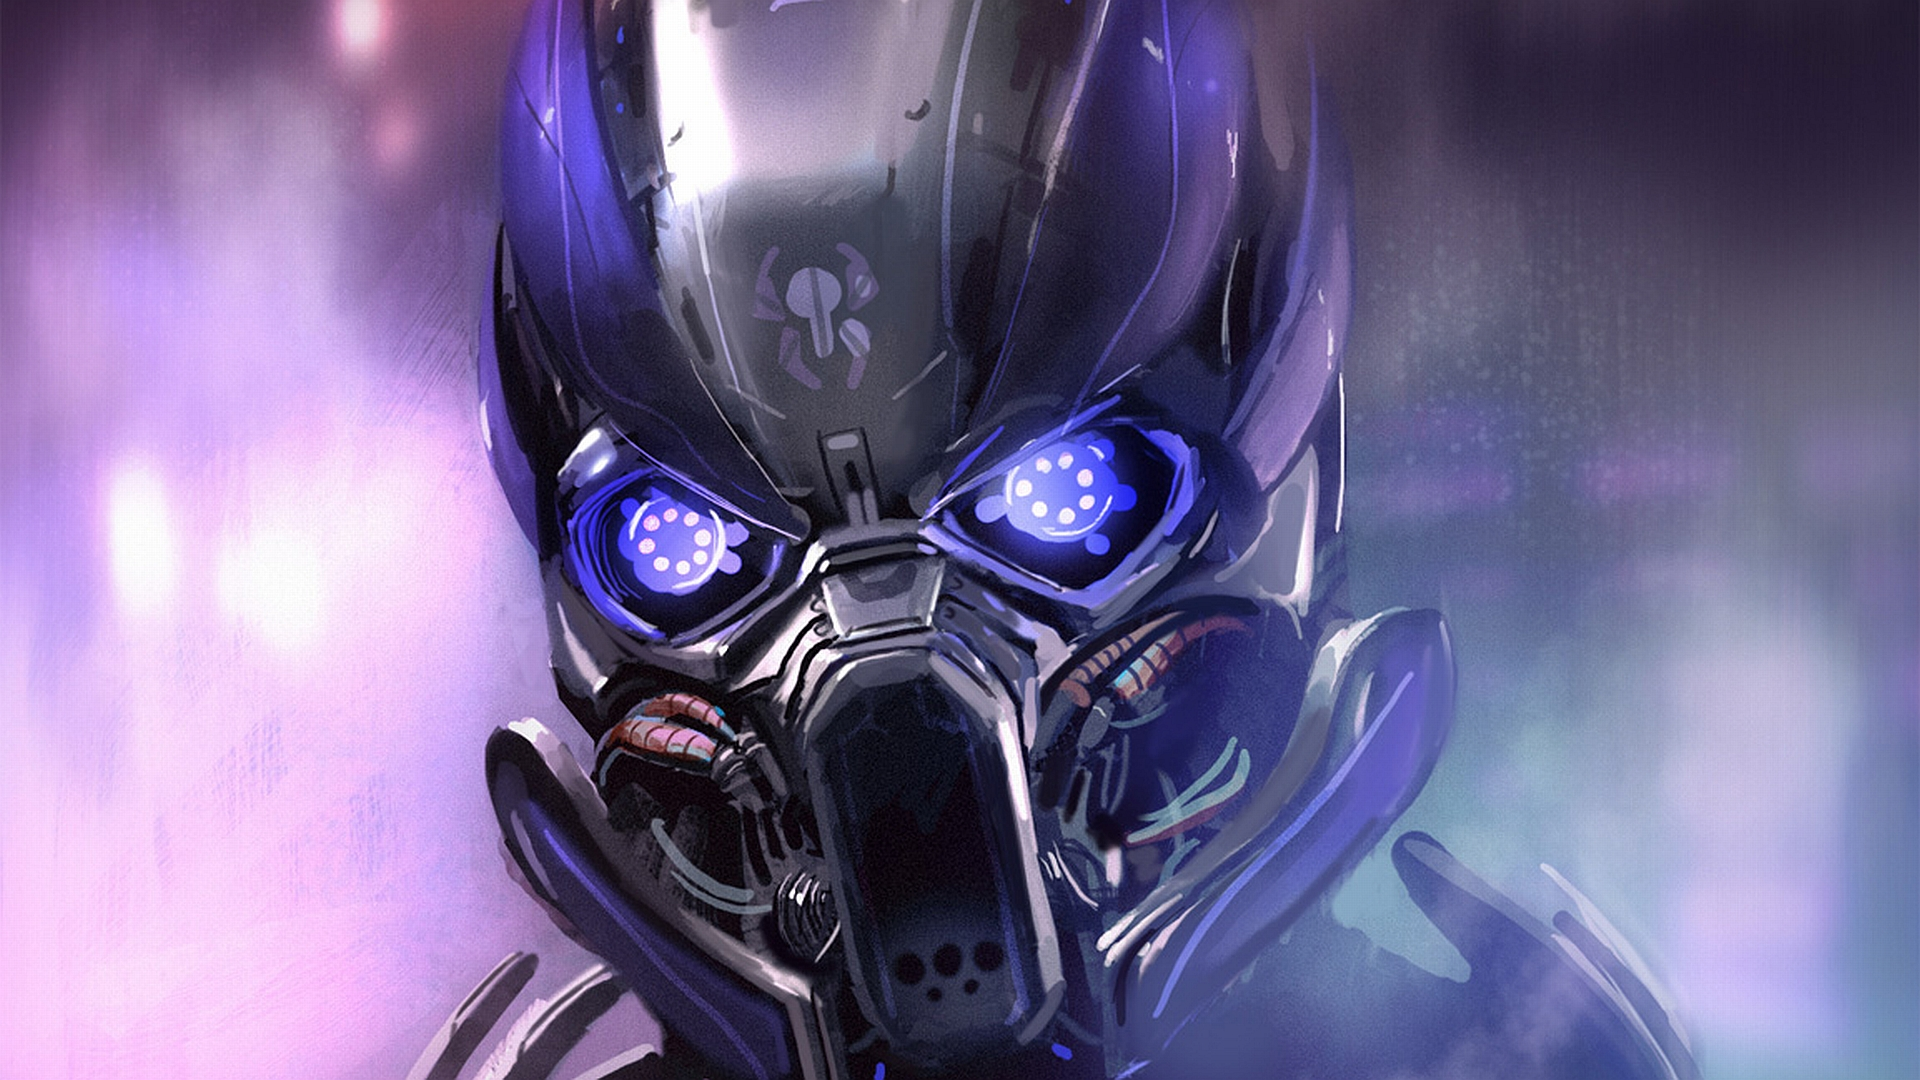 765 Robot HD Wallpapers | Backgrounds - Wallpaper Abyss ...